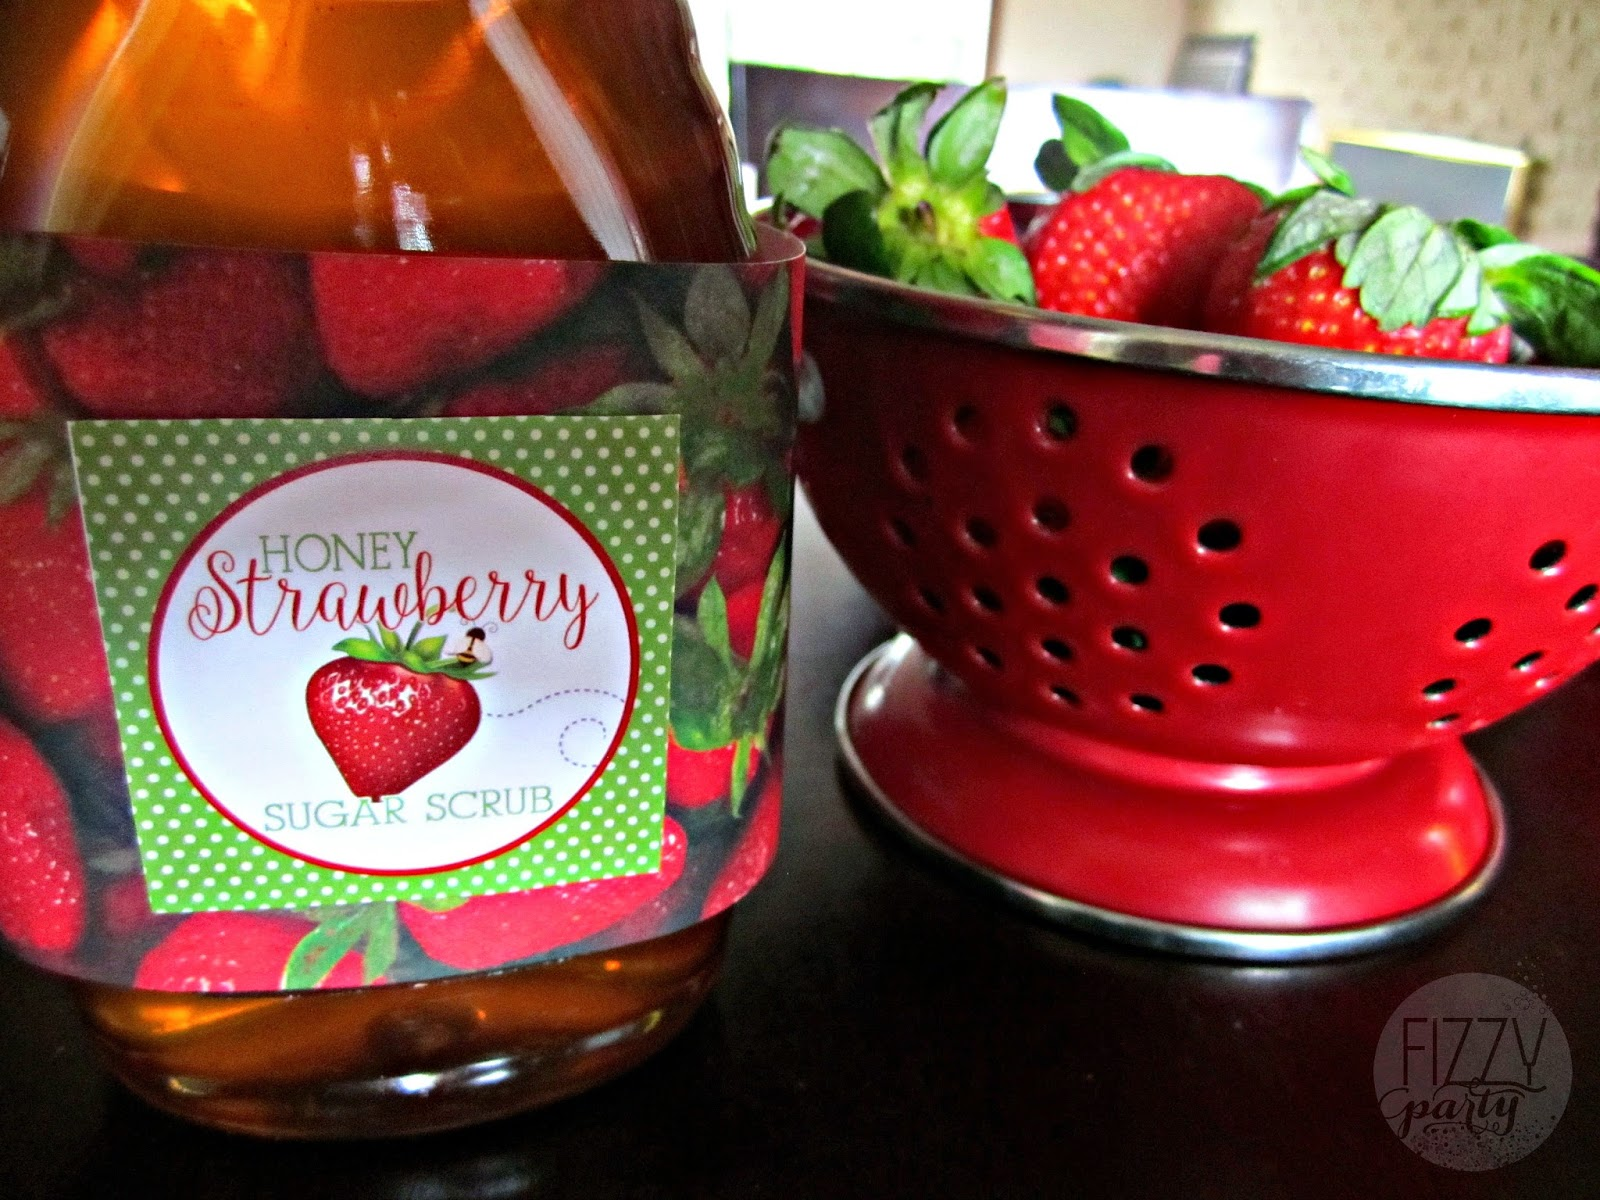 Honey strawberry sugar scrub ingredients